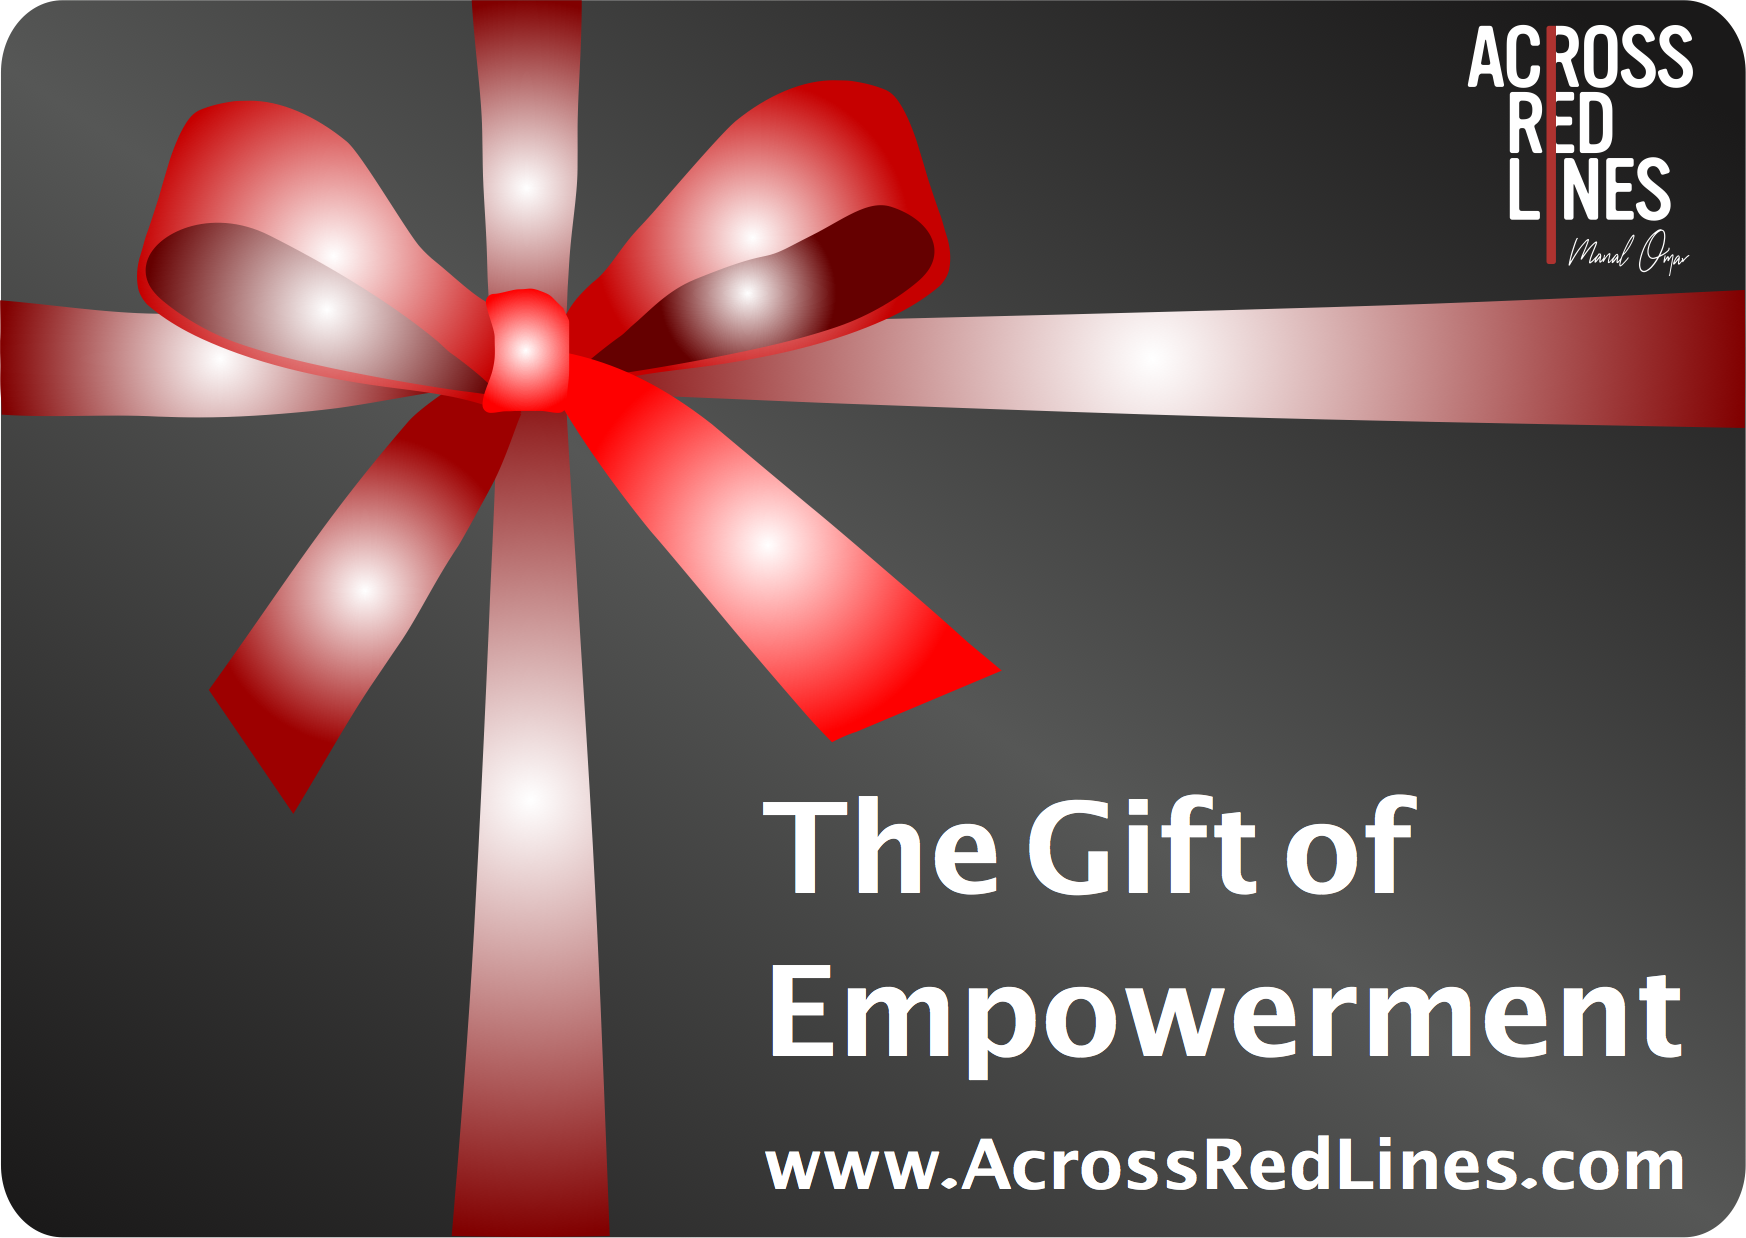 Want to Help Another? - Across Red Lines is offering you the chance to purchase gift cards and donate to scholarships to enable others to take advantage of our life changing retreats.